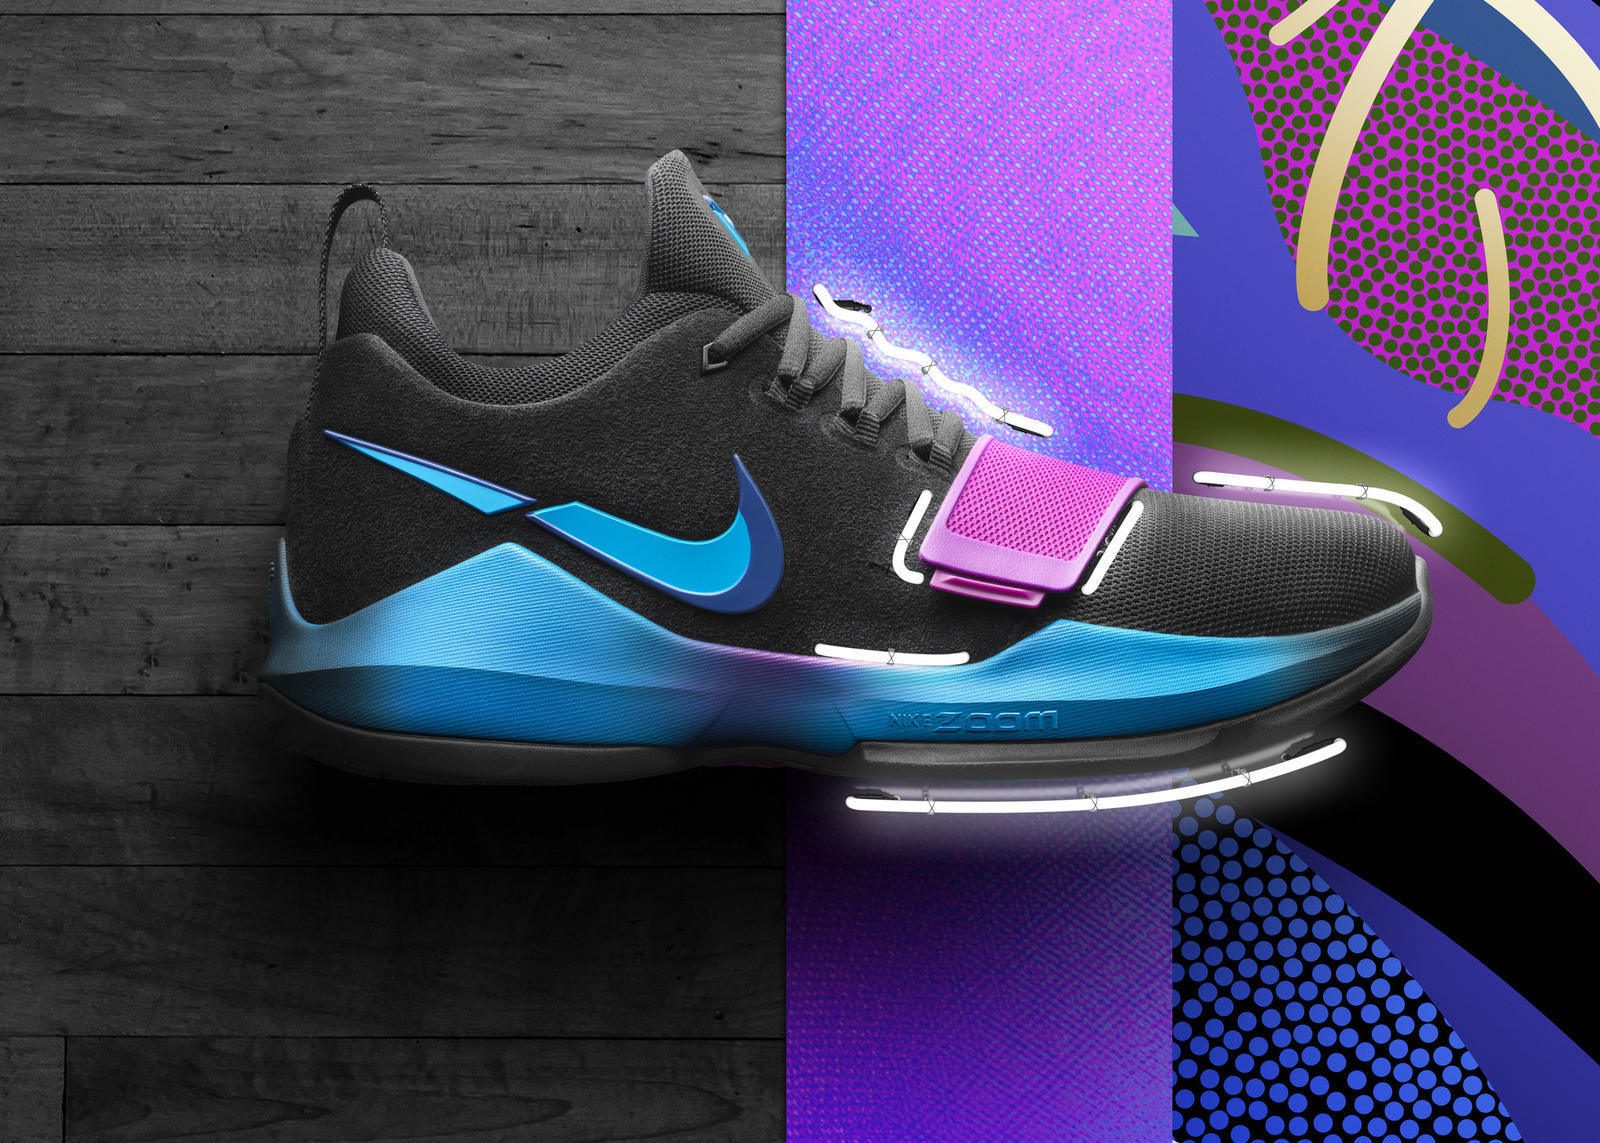 6f4c8755e040 Nike Basketball Flip the Switch Collection - Nike News